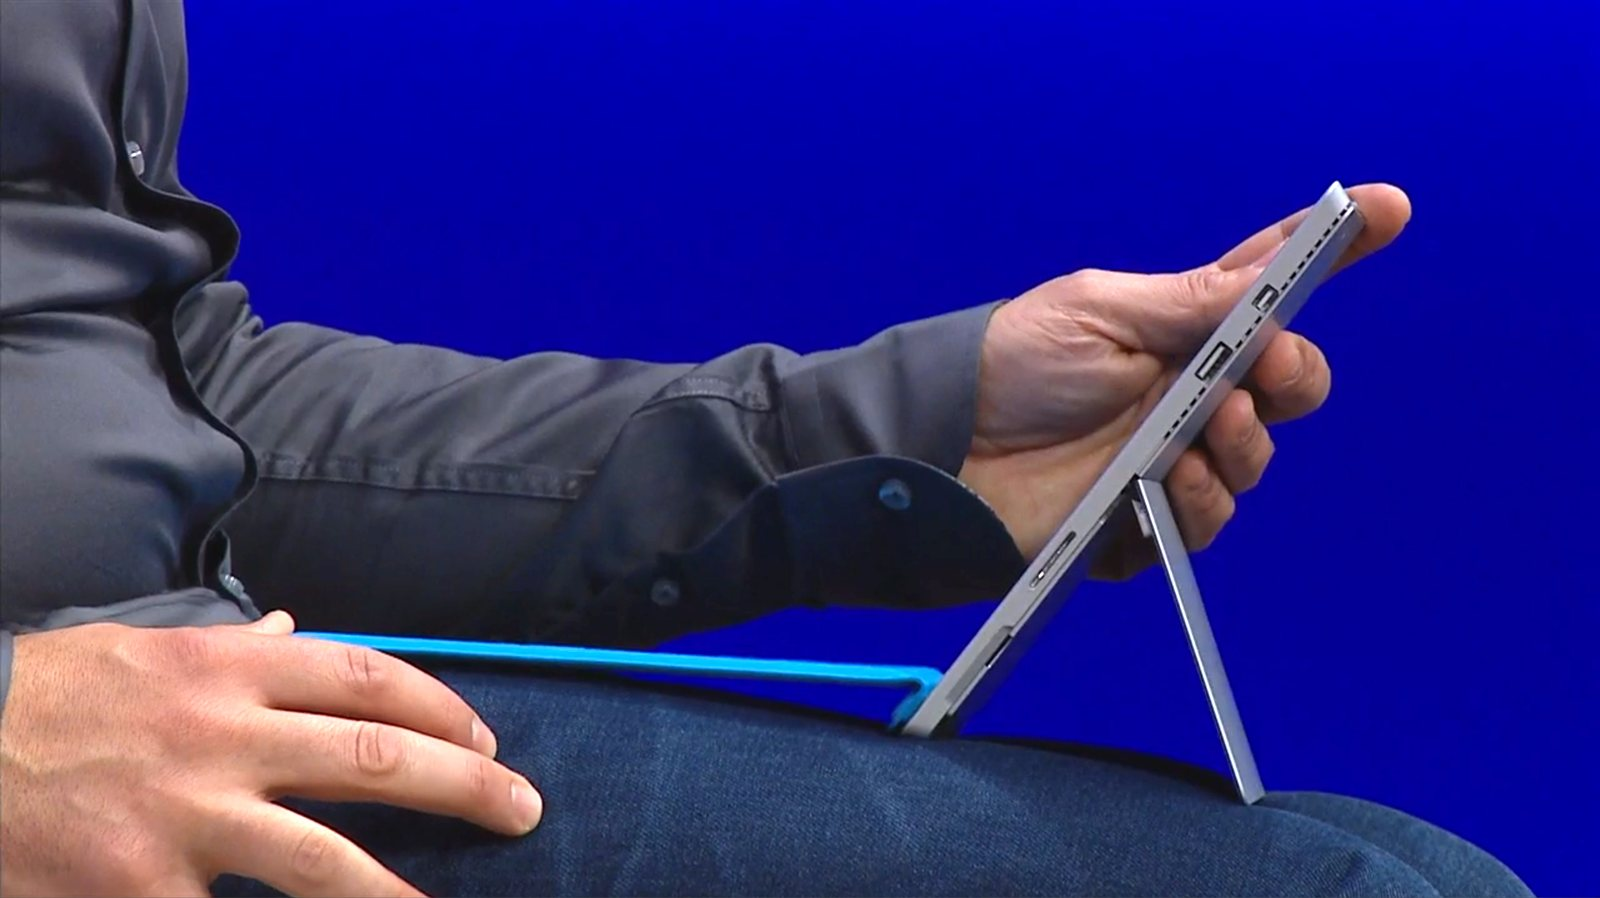 Panos Panay clicks the keyboard cover onto the front of the Surface Pro 3 to increase stability.